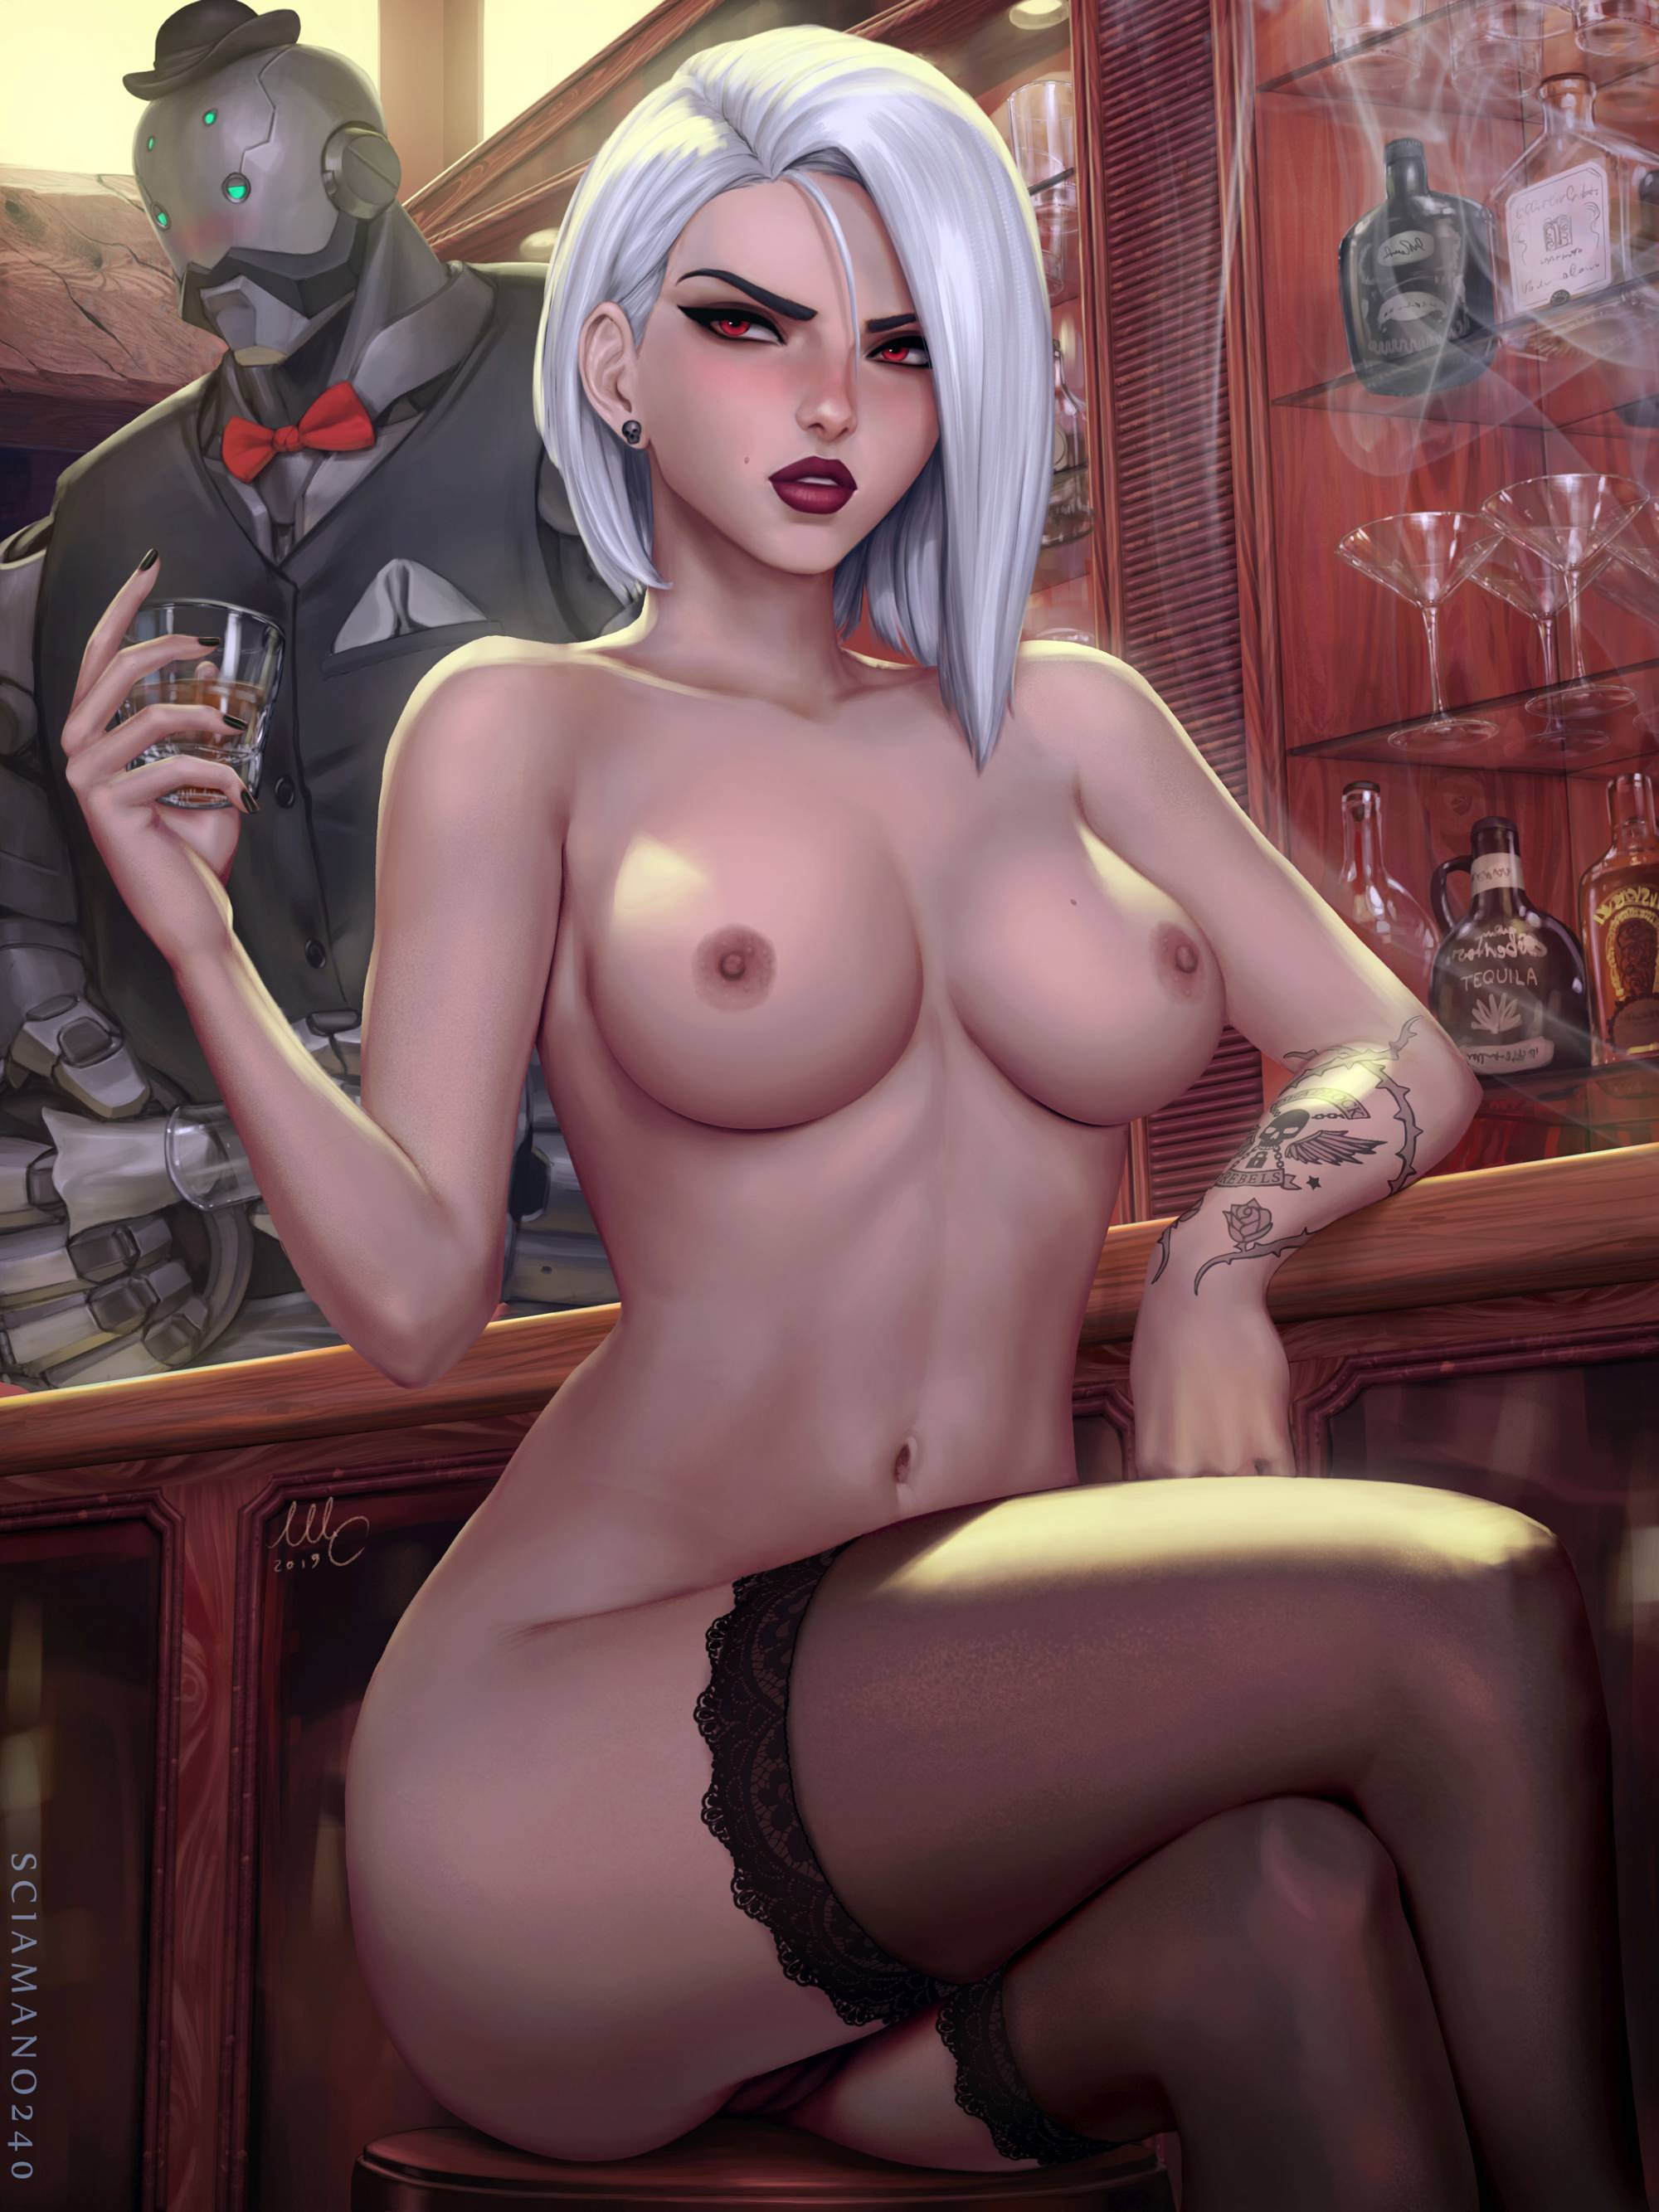 Thirty More Hentai Drawings Of Ashe From Overwatch